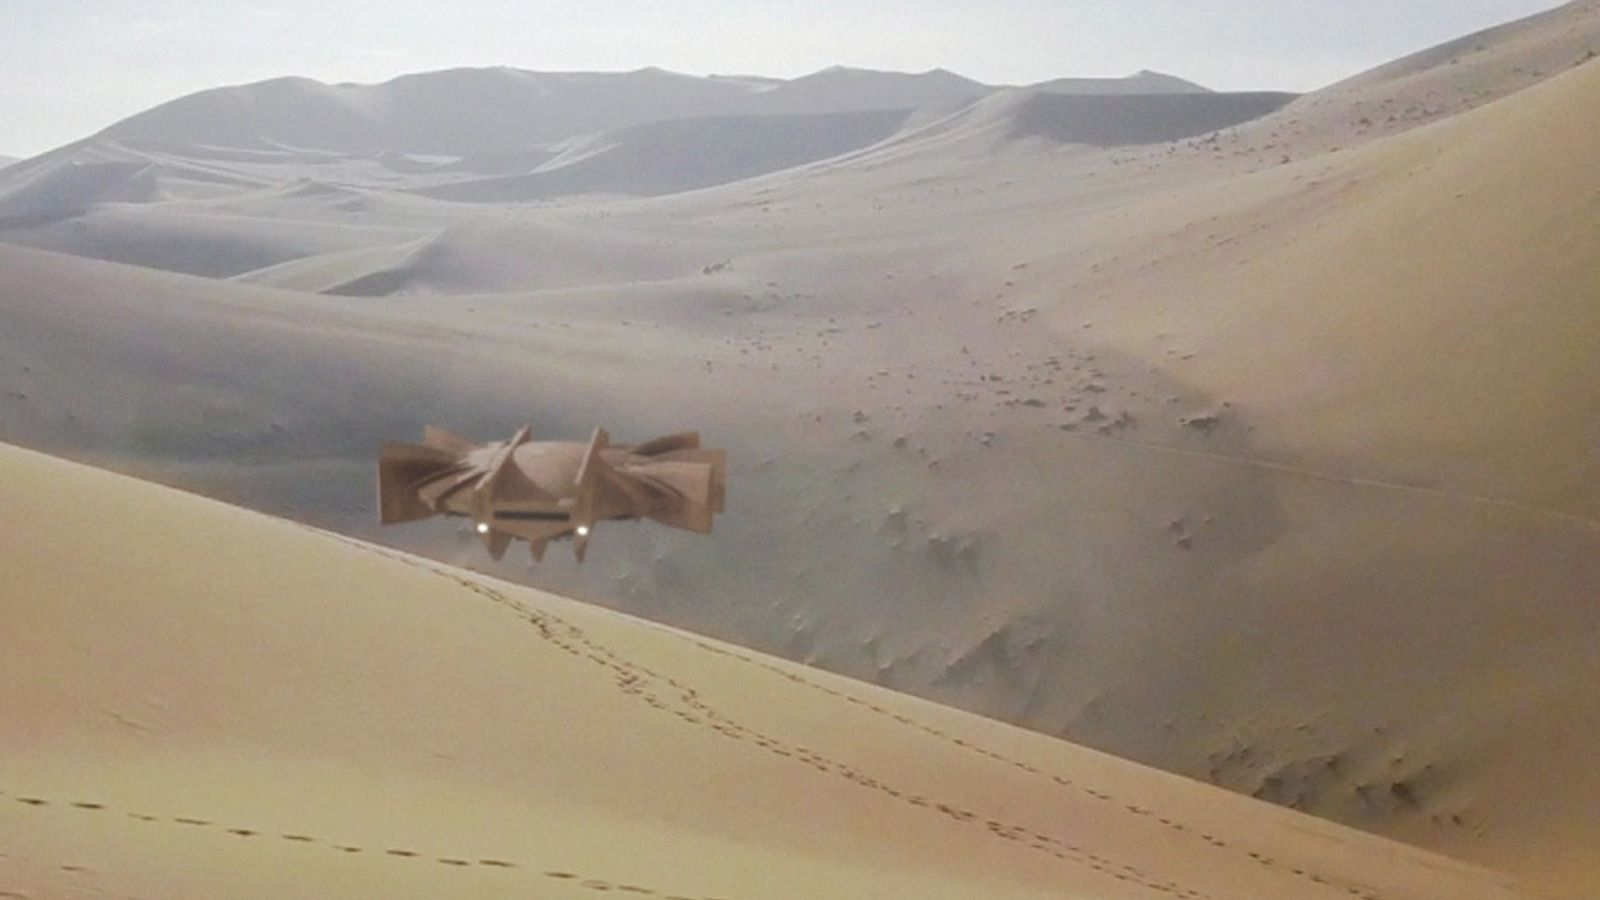 👽 UFO Spotted in The Sand Dunes of Mali Desert (CGI)